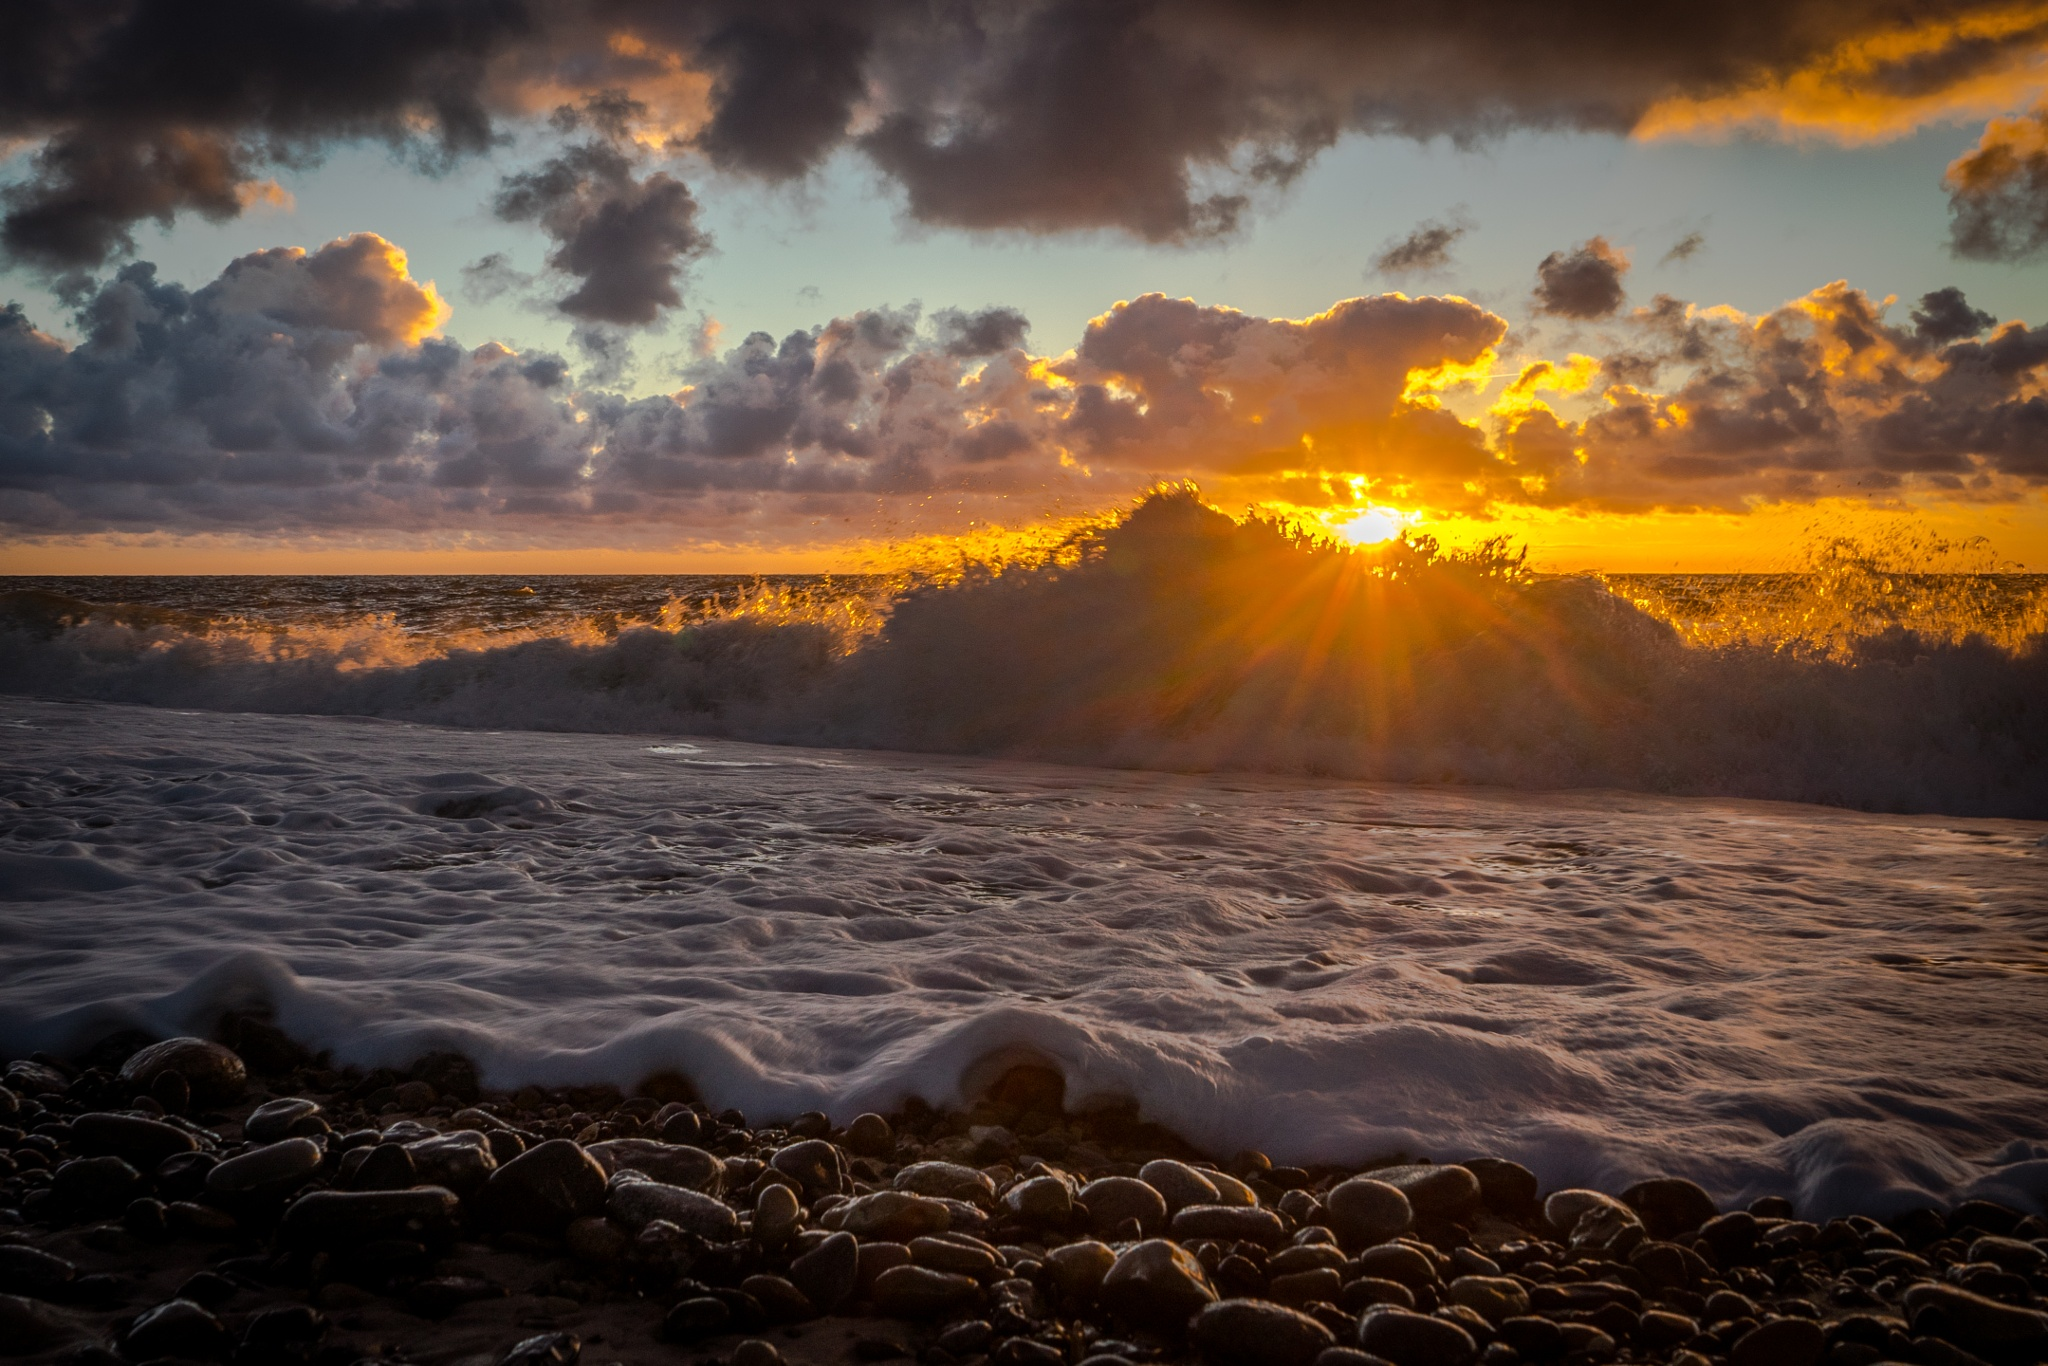 Water in the Sunset by Morten Thomsen